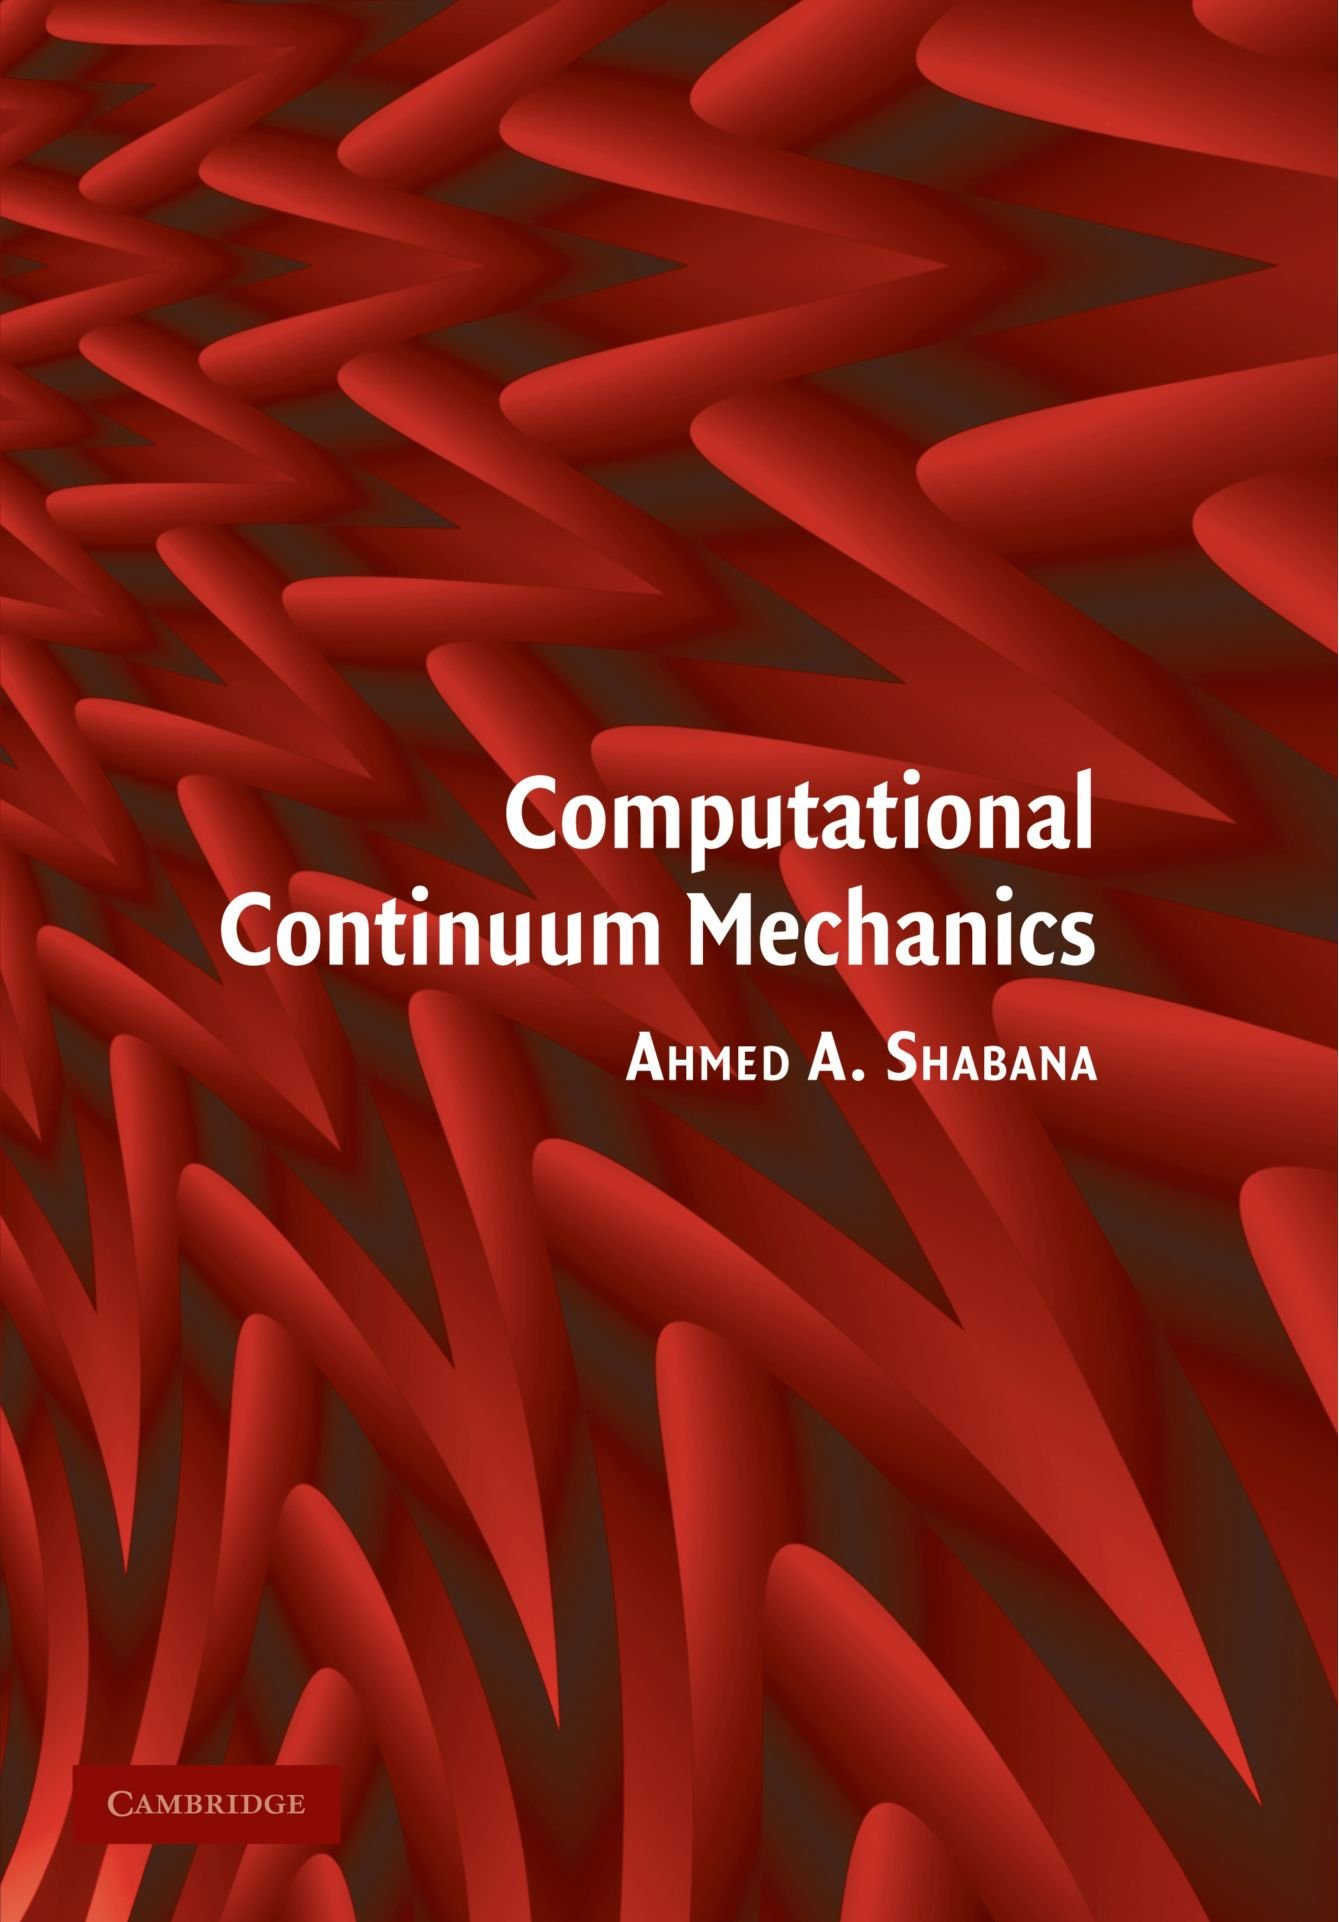 Computational Continuum Mechanics